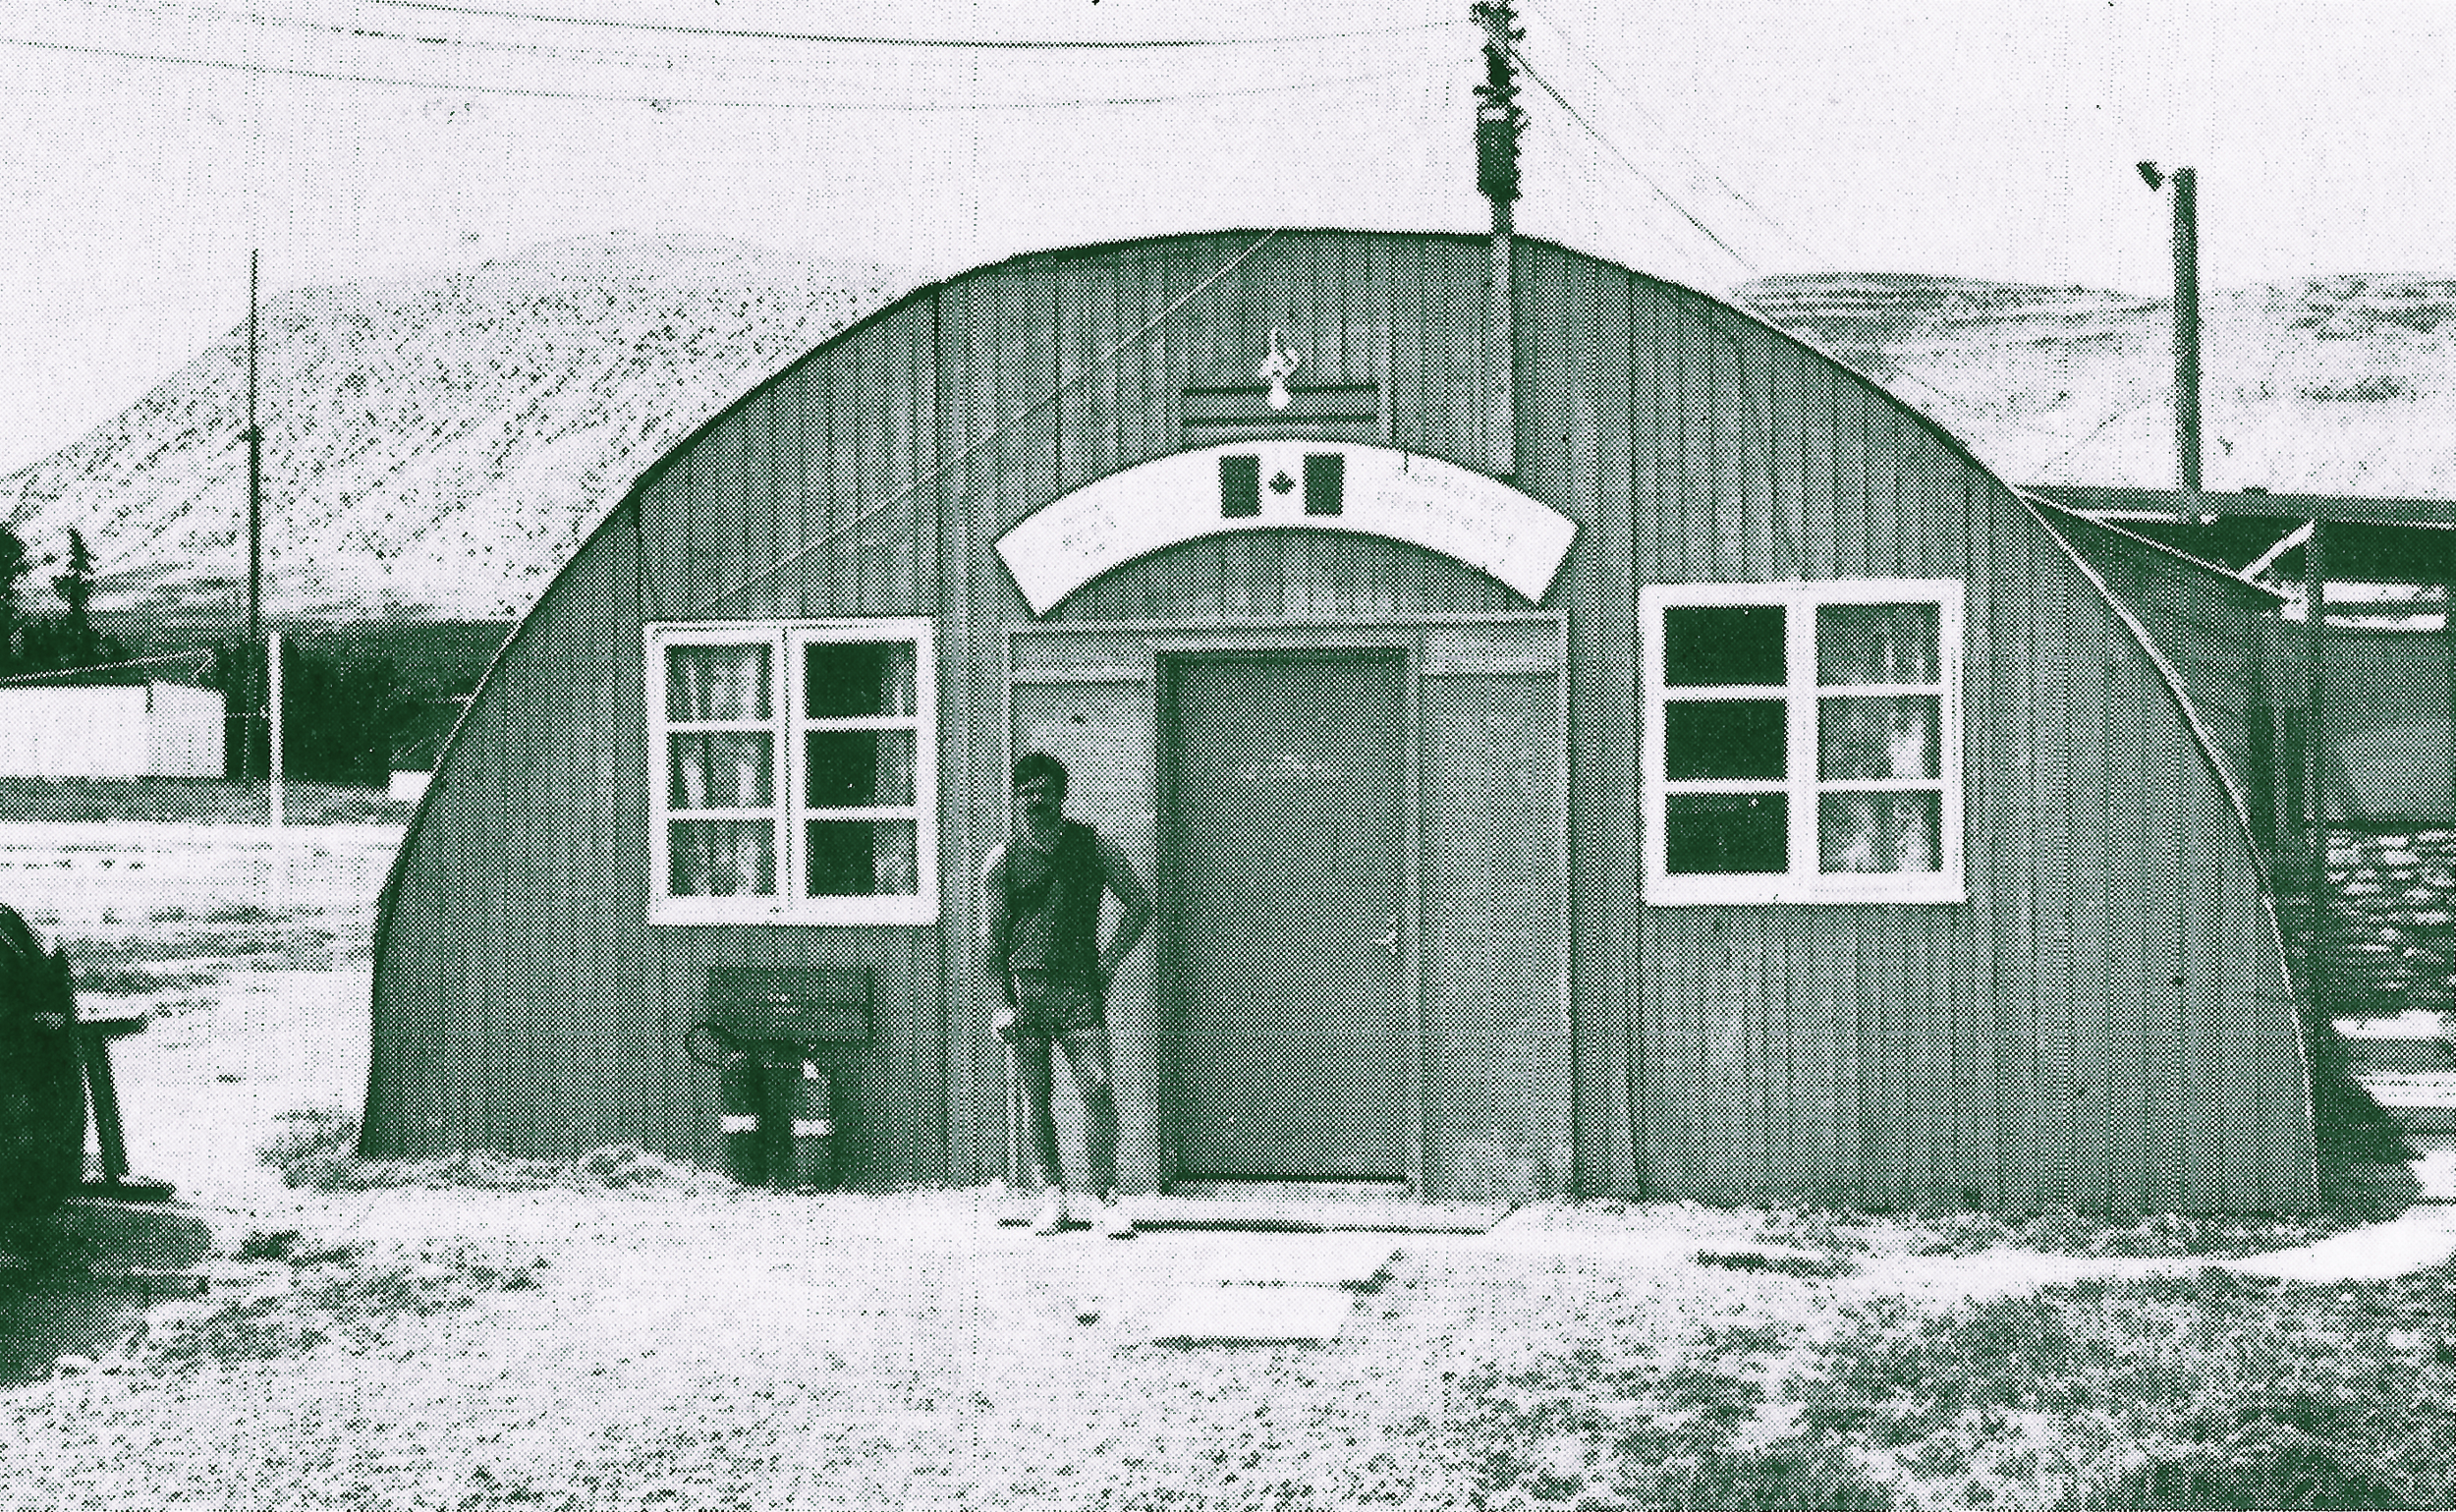 Frank Reid's recollections of life as a peacekeeping in Cyprus shortly after the civil war erupted on the Mediterranean island in 1974. Pictured, the humble digs in Louroujina where the Canadians slept and played table tennis. Private Rick Edmonds stands in front of the door. This is a far cry from Nicosia's Ledra Palace, where Frank Reid was first stationed. (Rcr Photographer)